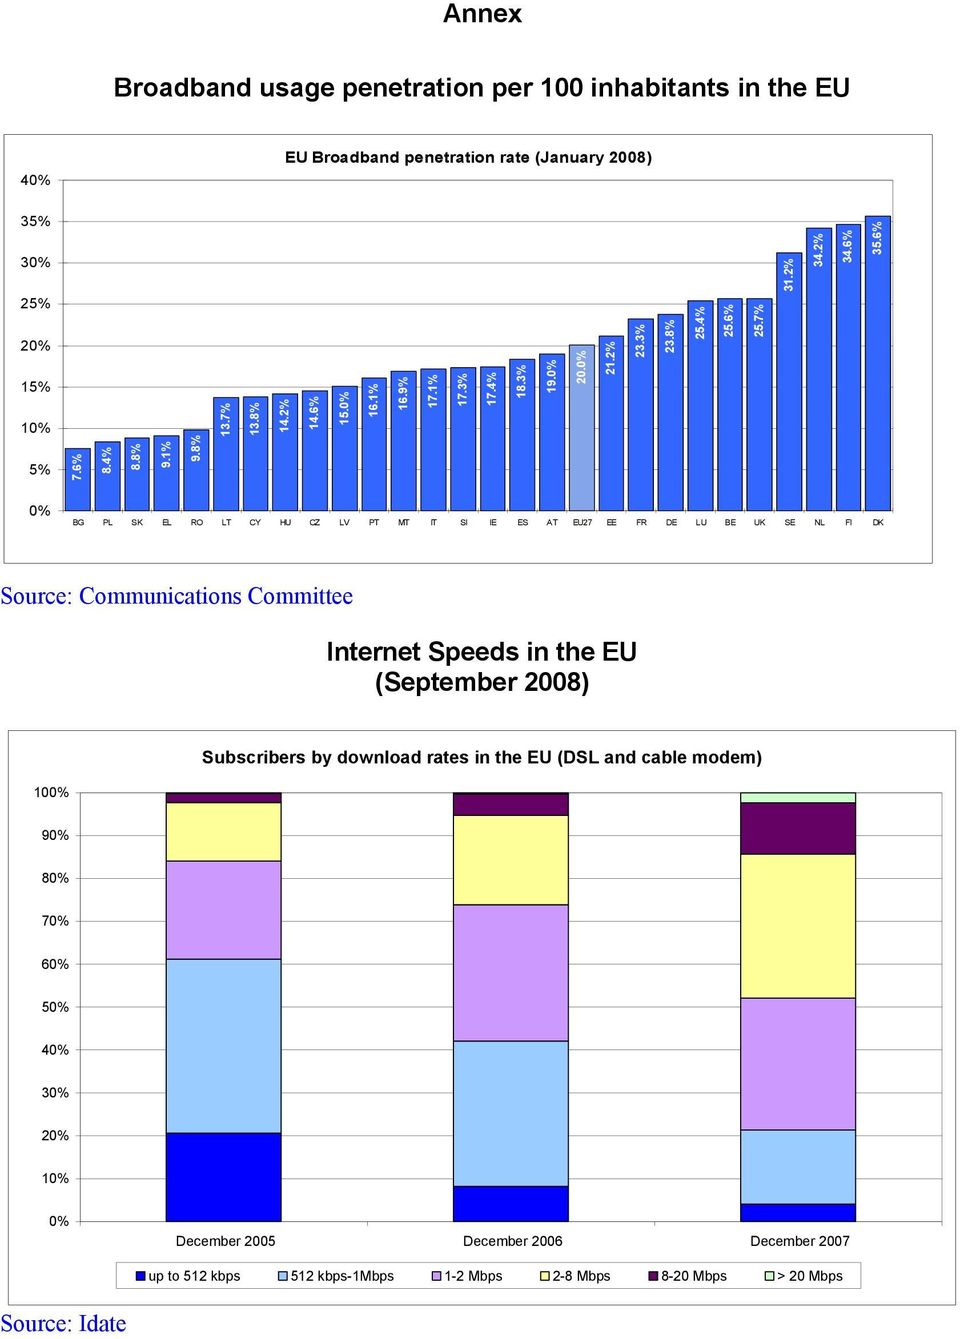 6% BG PL SK EL RO LT CY HU CZ LV PT MT IT SI IE ES AT EU27 EE FR DE LU BE UK SE NL FI DK Source: Communications Committee Internet Speeds in the EU (September